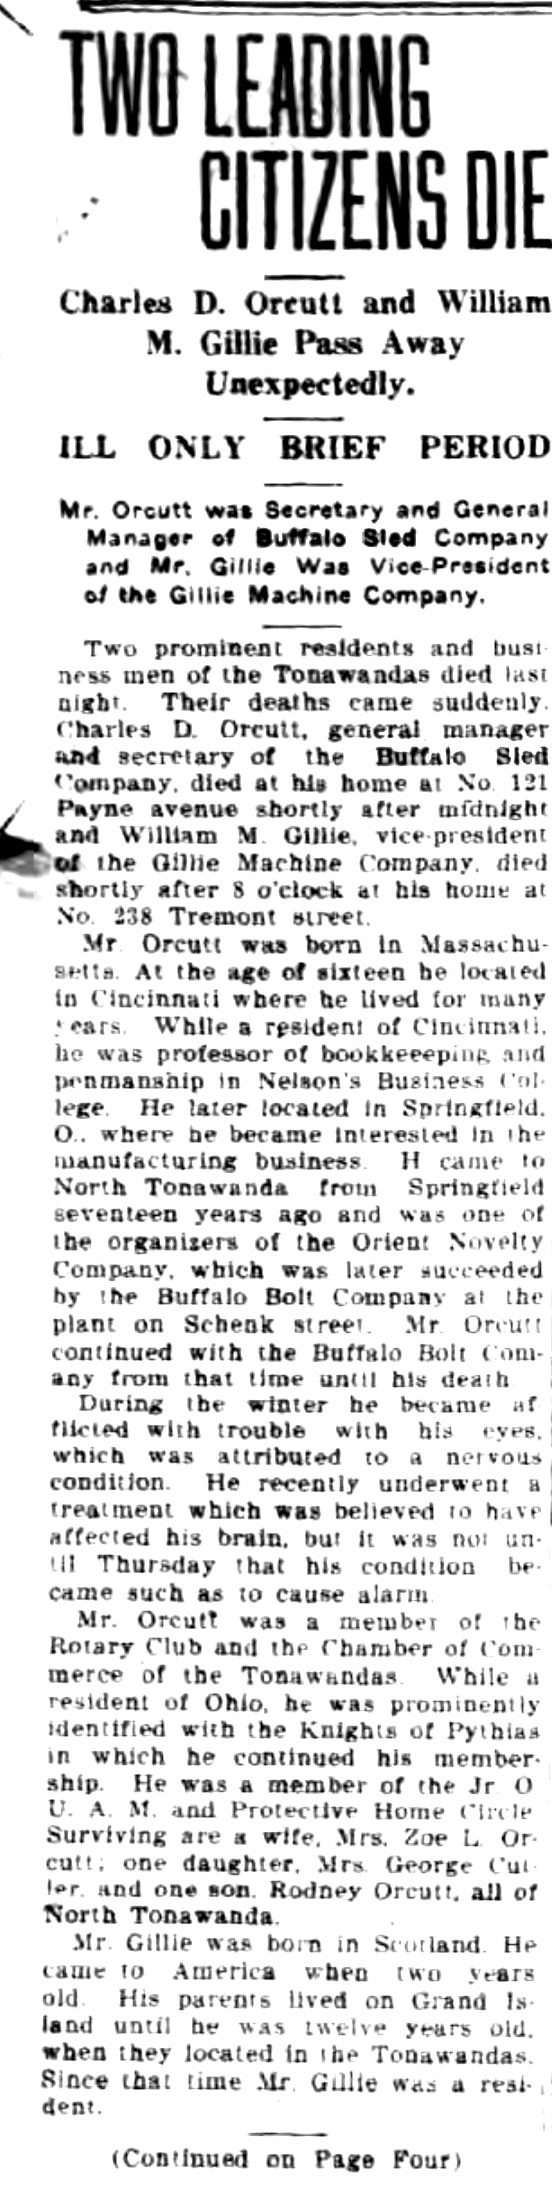 Two leading citizens die, Orcutt and Gillie, article (Tonawanda News, 1920-04-20, 0788).jpg